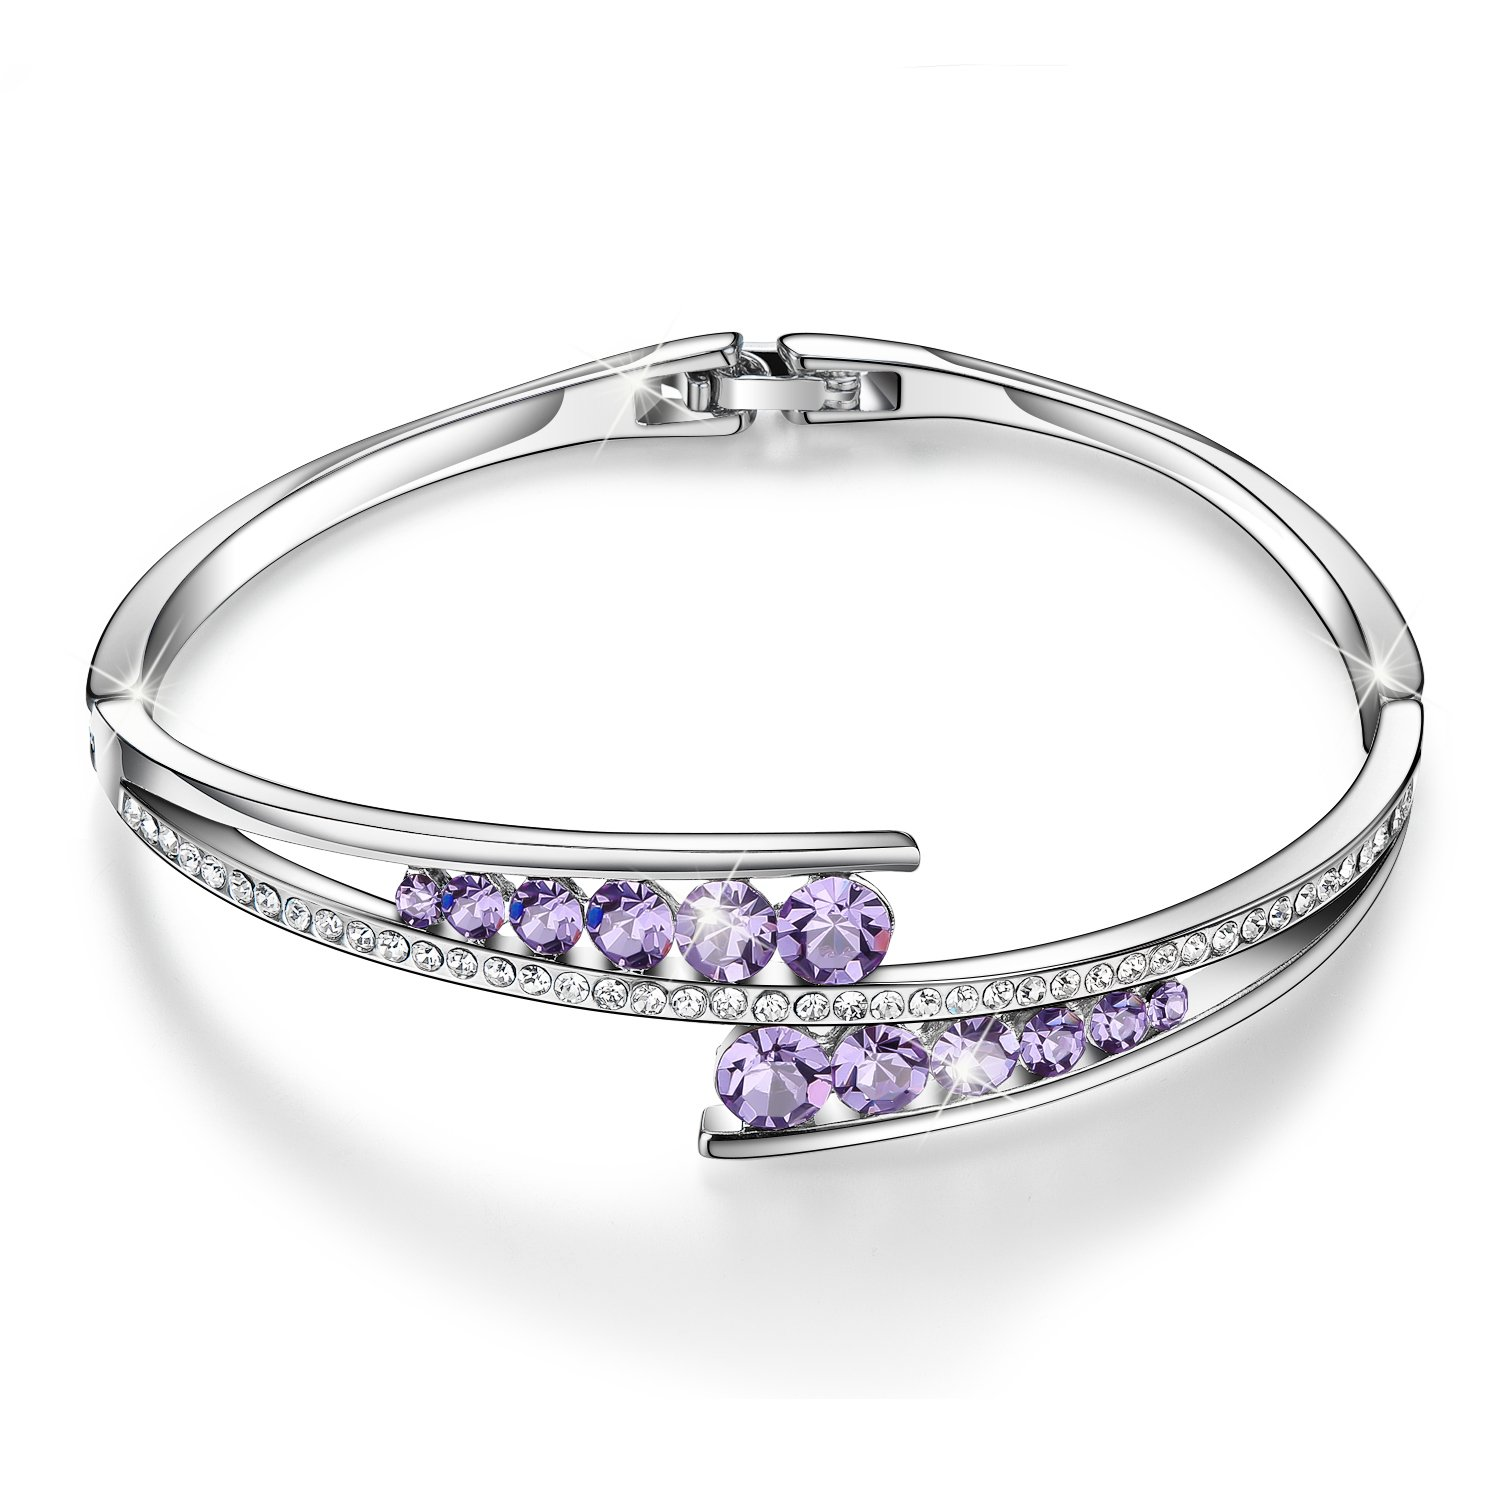 Menton Ezil ''Love Encounter Purple Amethyst White Gold Plated Bracelet Fashion Jewelry Her Anniversary